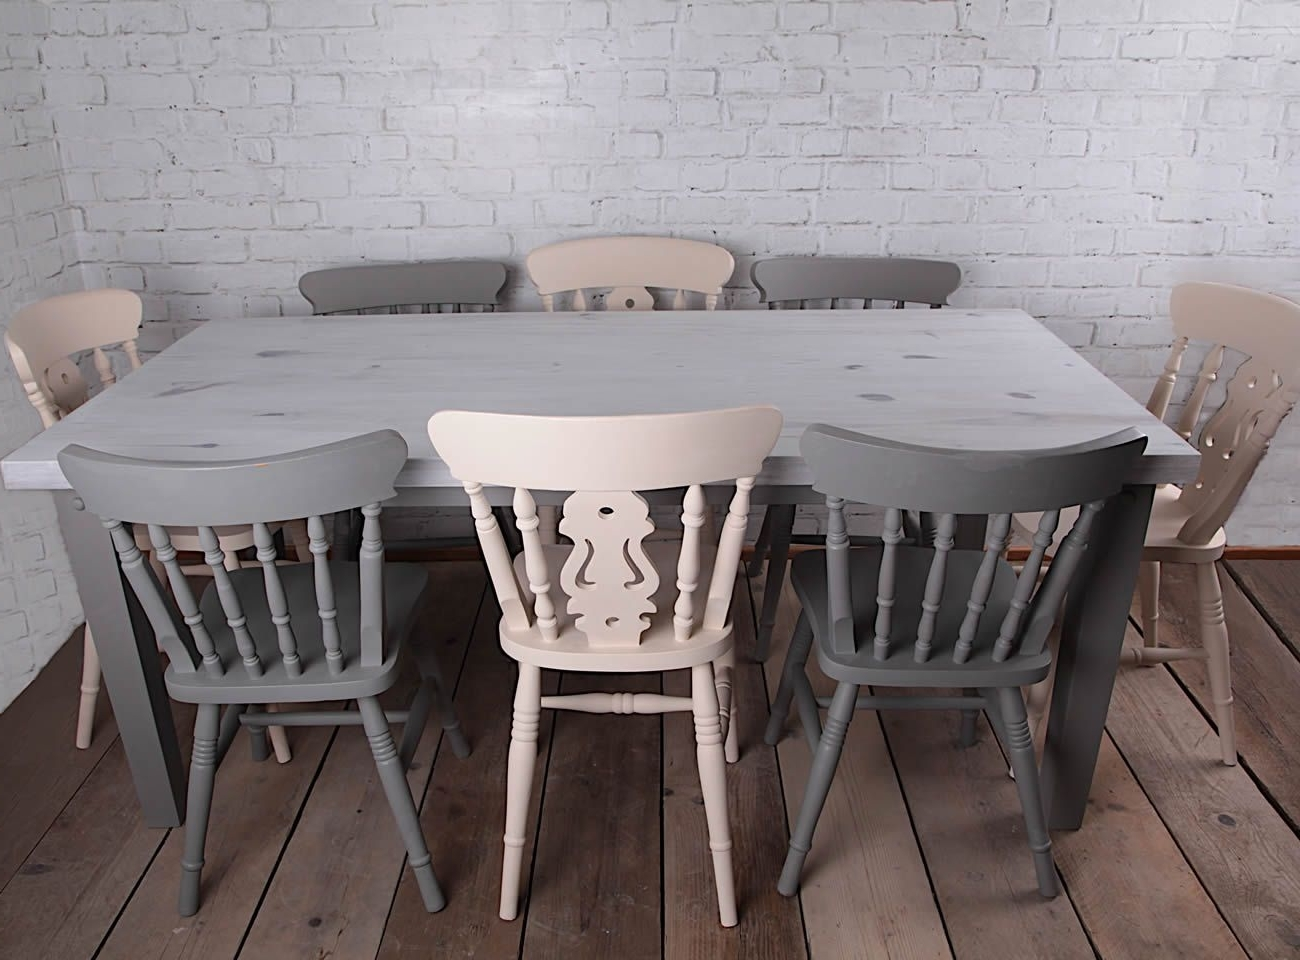 Most Recent Mesa Y Sillas Pintadas En Blancos Y Grises #autenticochalkpaint Y Throughout Shabby Dining Tables And Chairs (View 10 of 25)